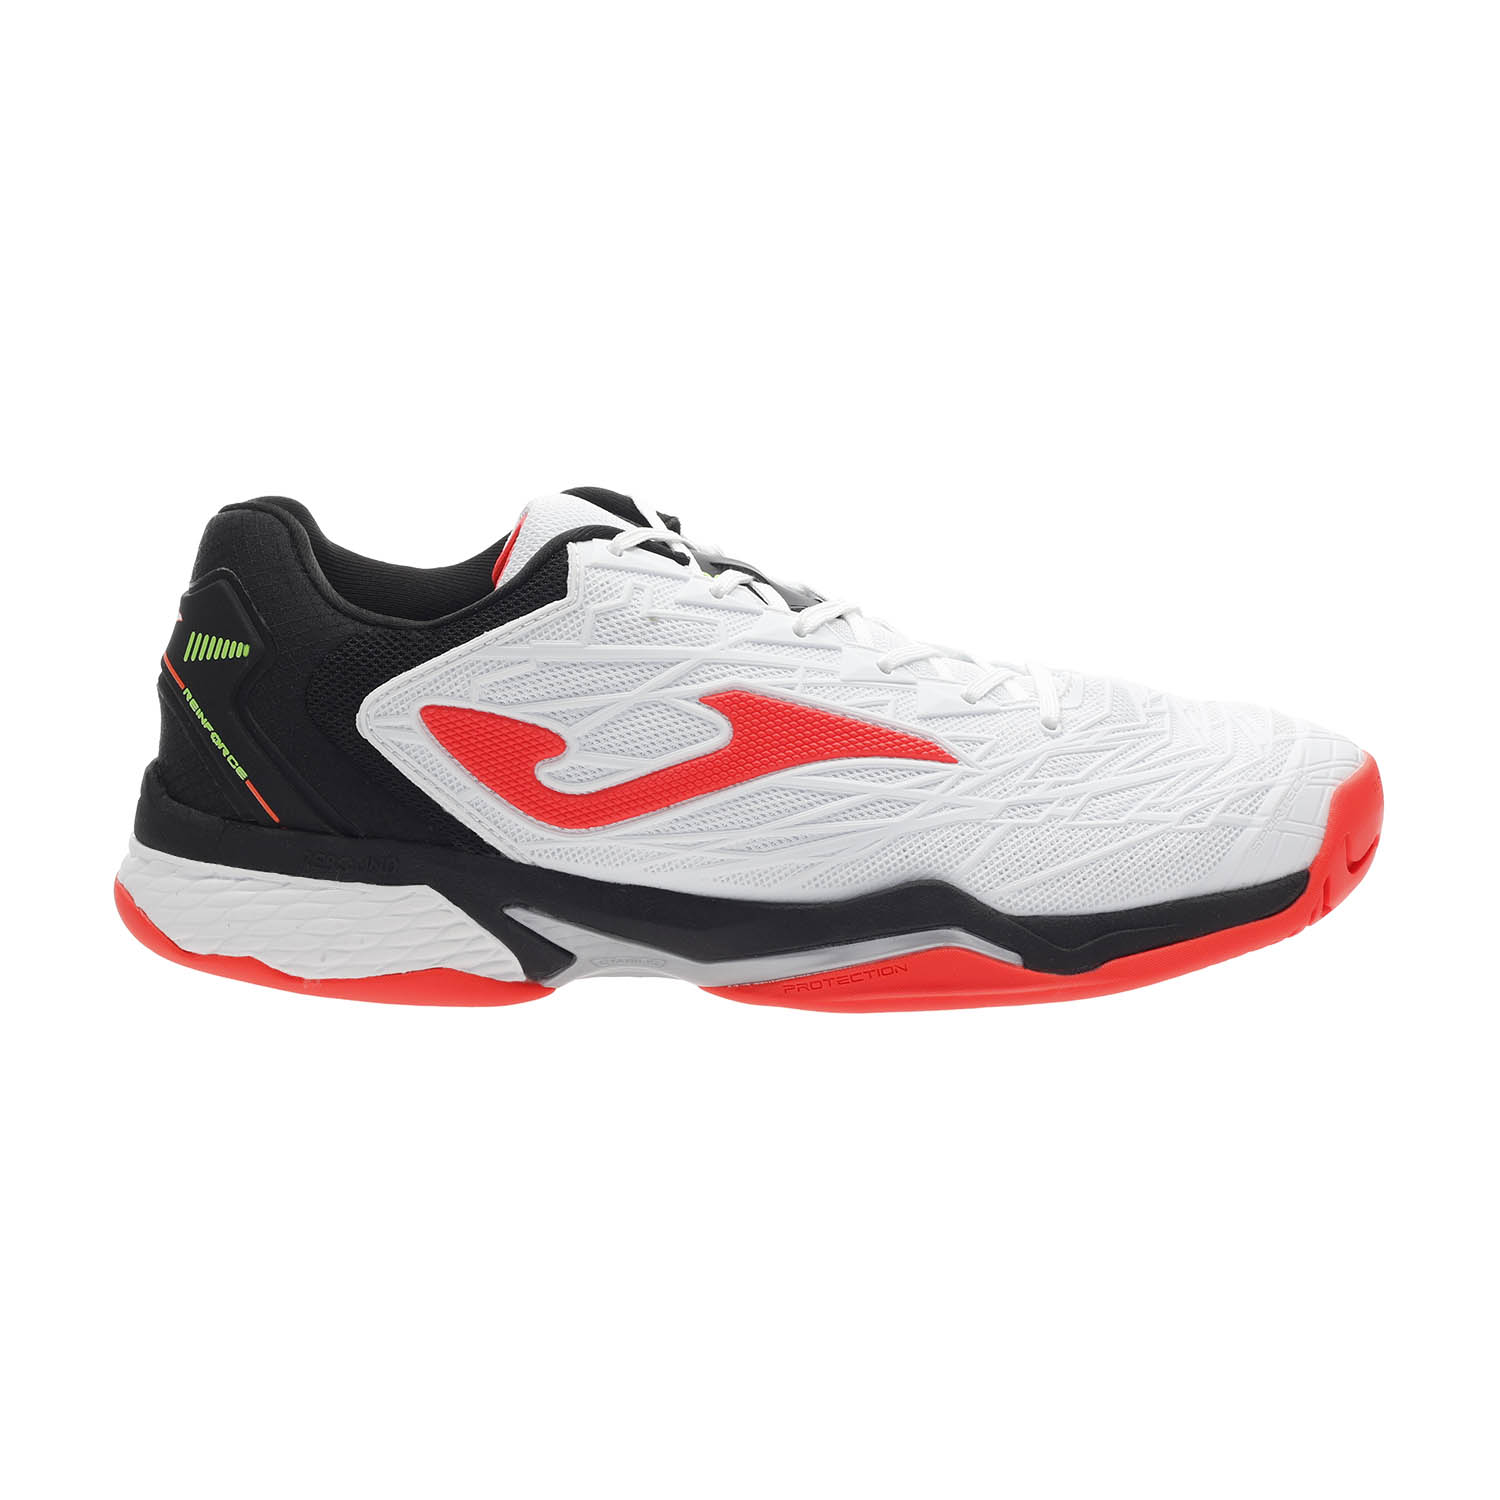 Joma Ace Pro 2002 All Court - White/Black